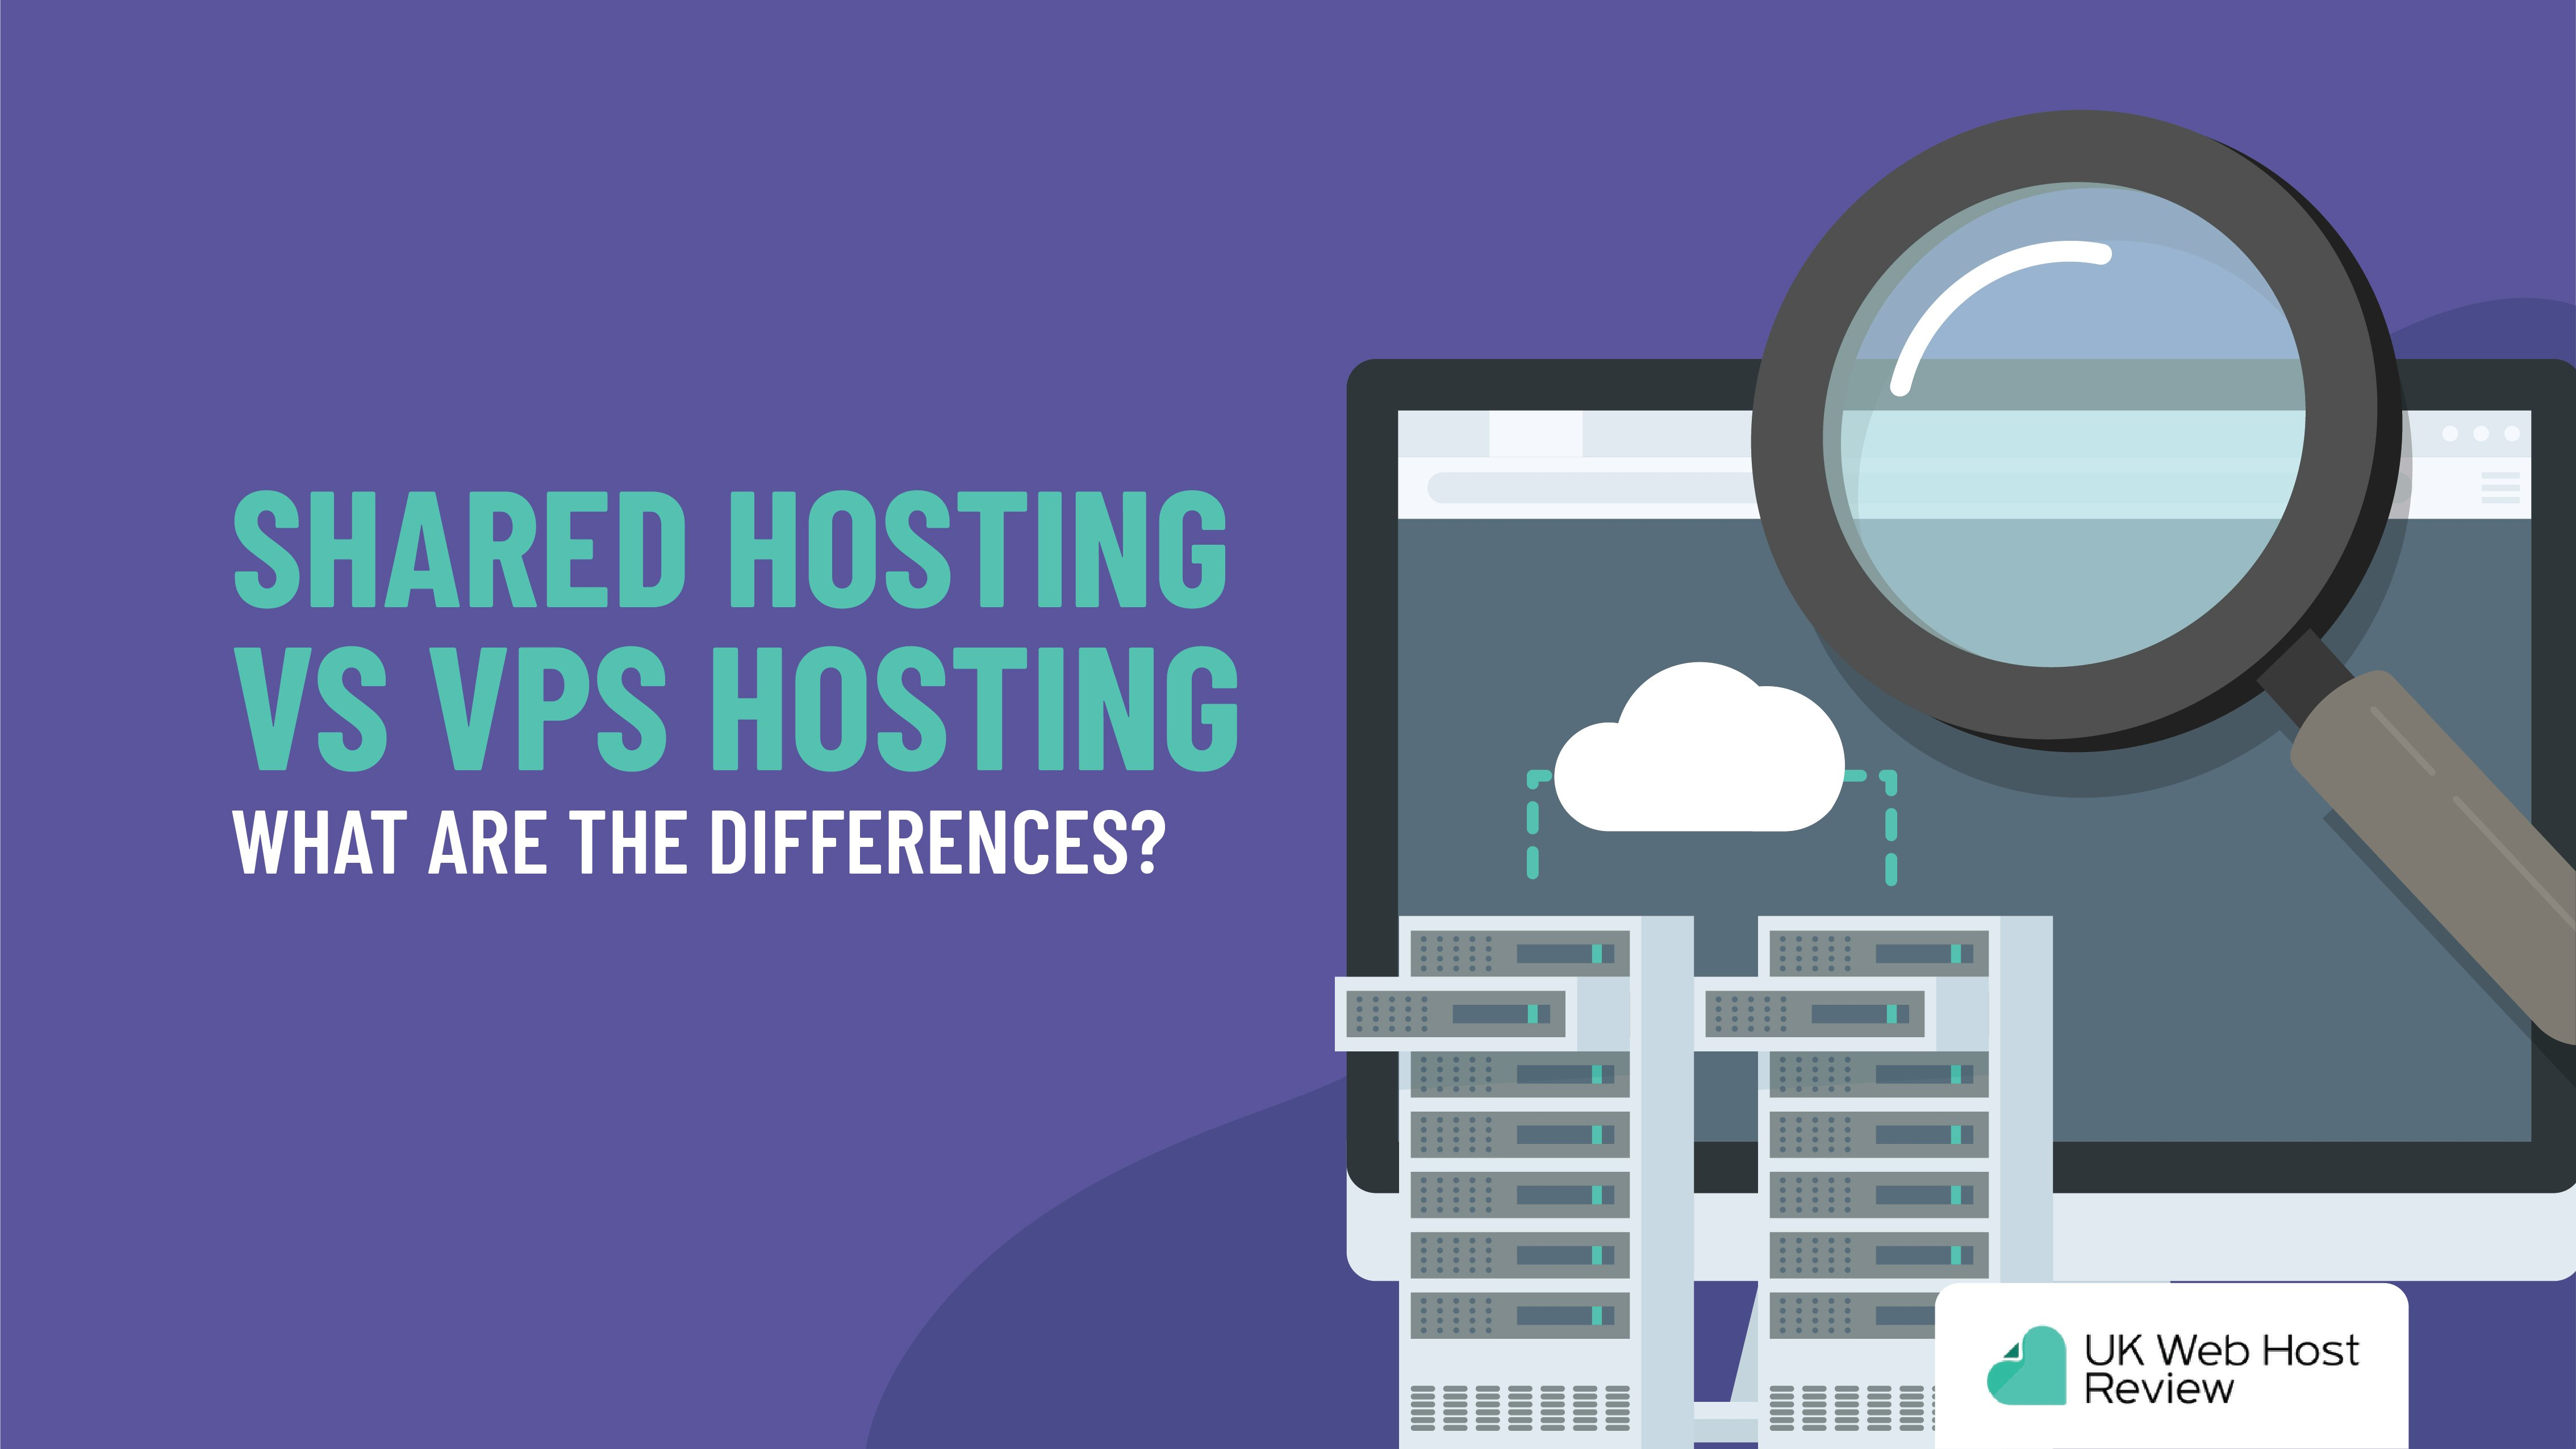 Shared Hosting Vs VPS Hosting: What are the Differences?